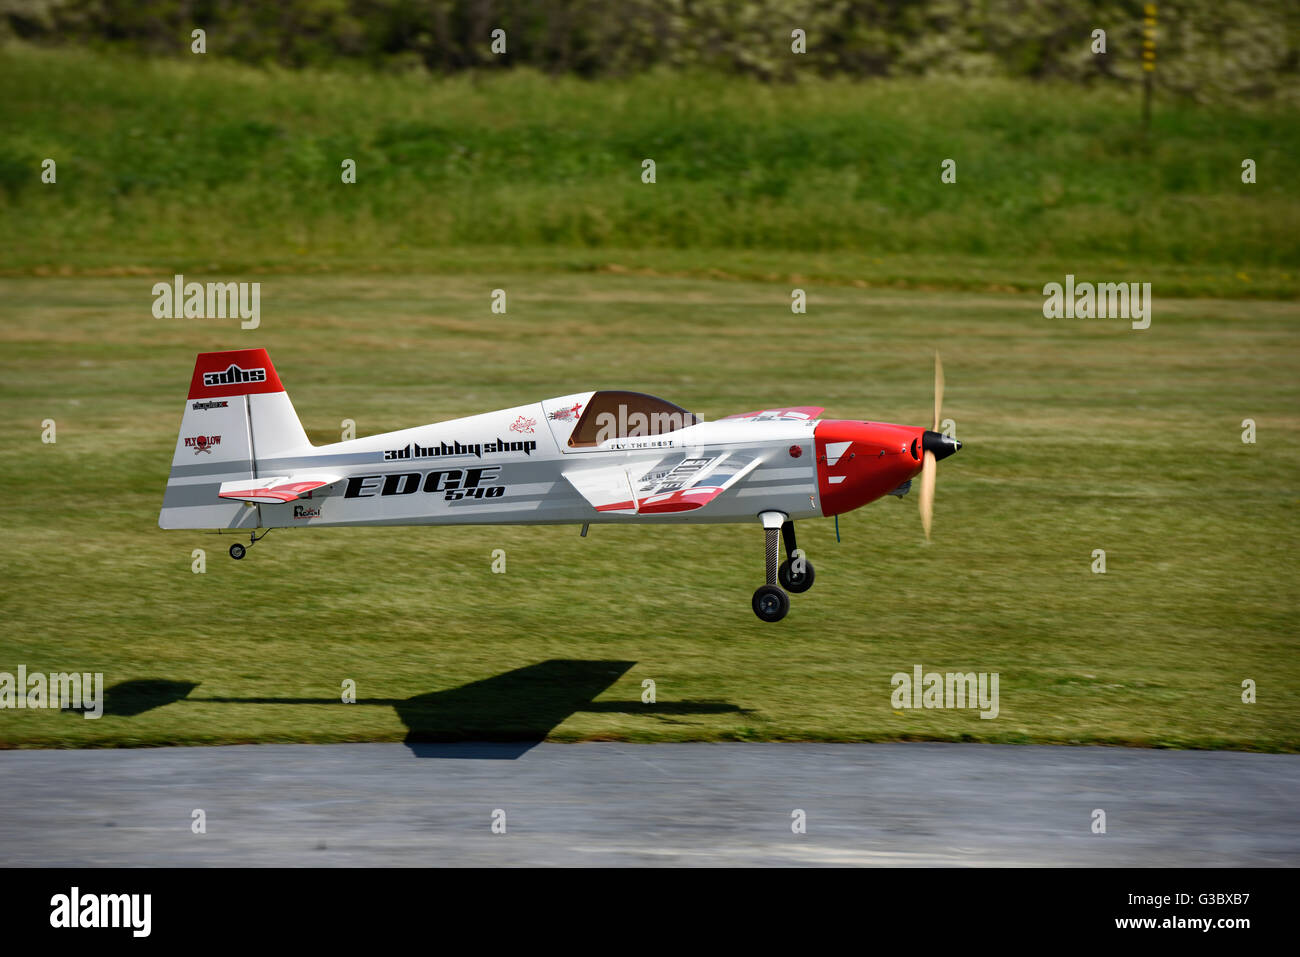 Single Prop gas engine radio controlled airplane landing in a grass field - Stock Image